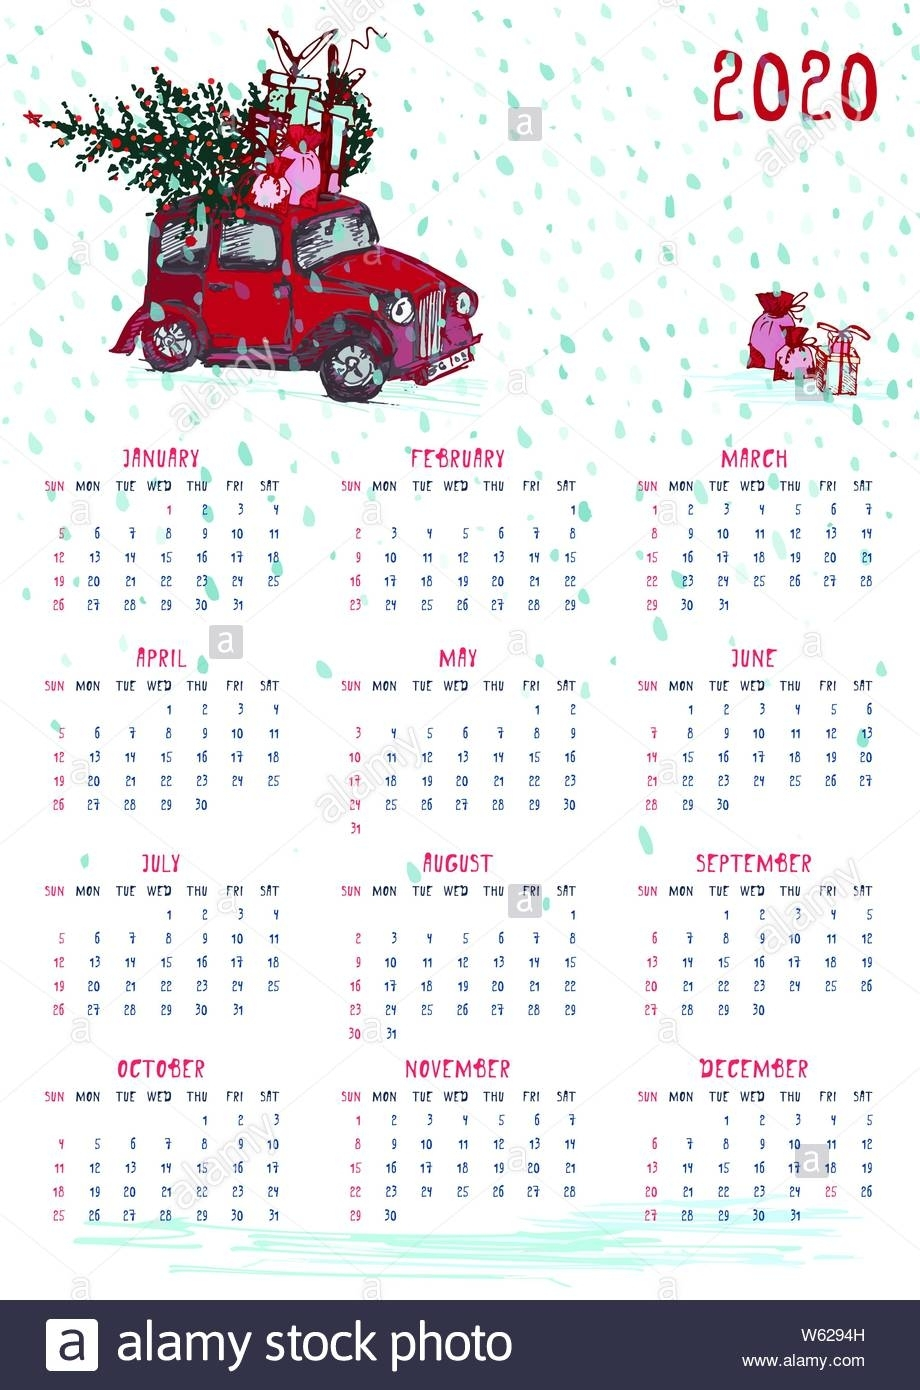 2020 Calendar Planner Whith Red Christmas Truck, New Year